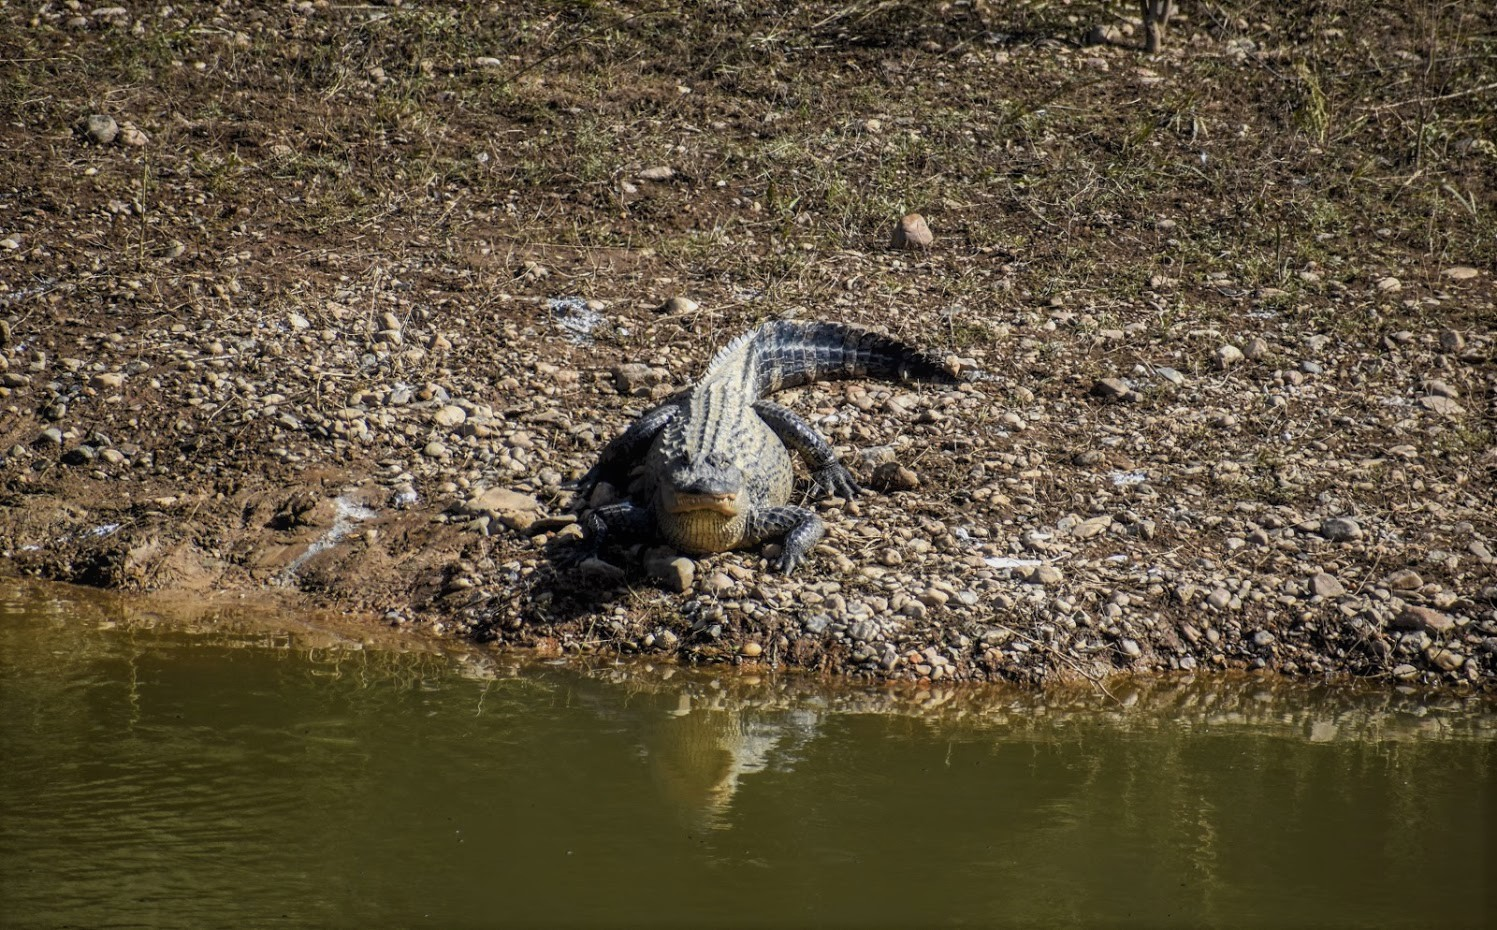 a large alligator suns on the bank facing the water